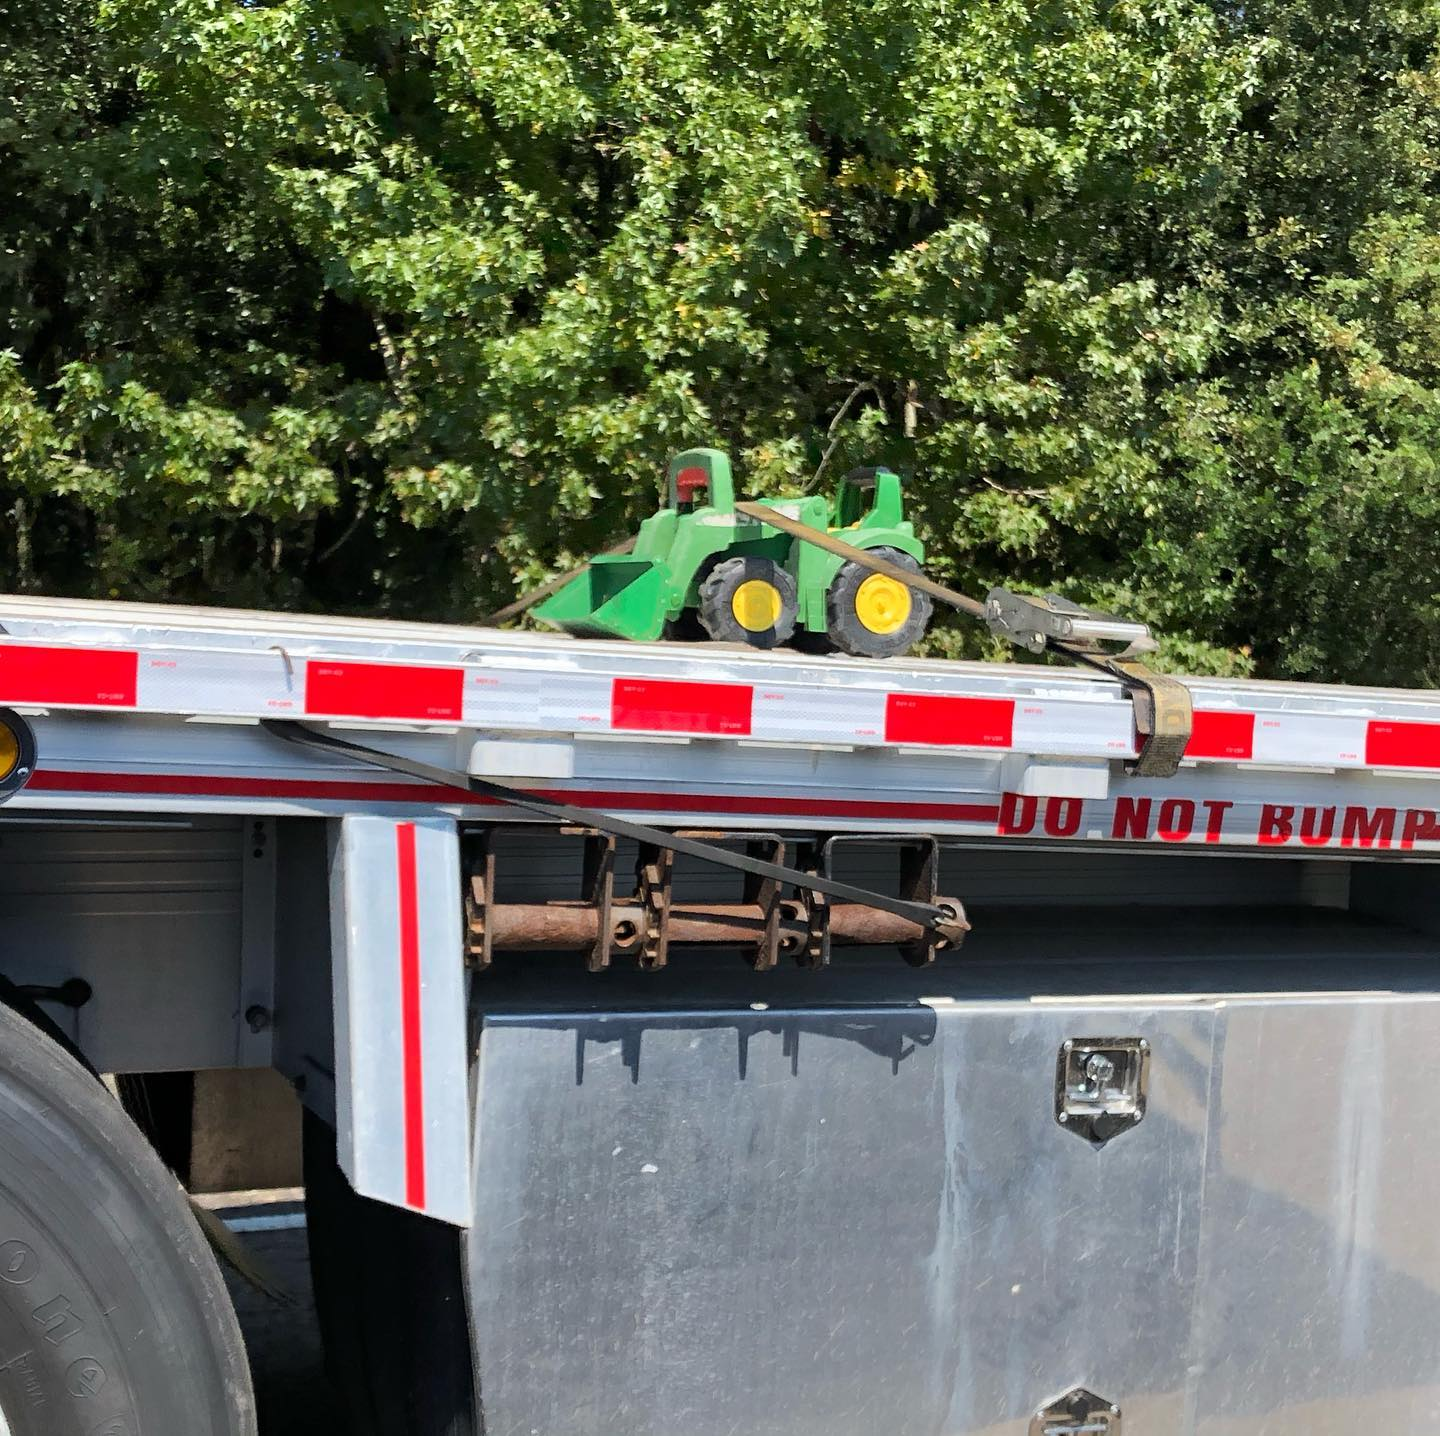 Safety is just as important for small jobs. Latest toy hauler